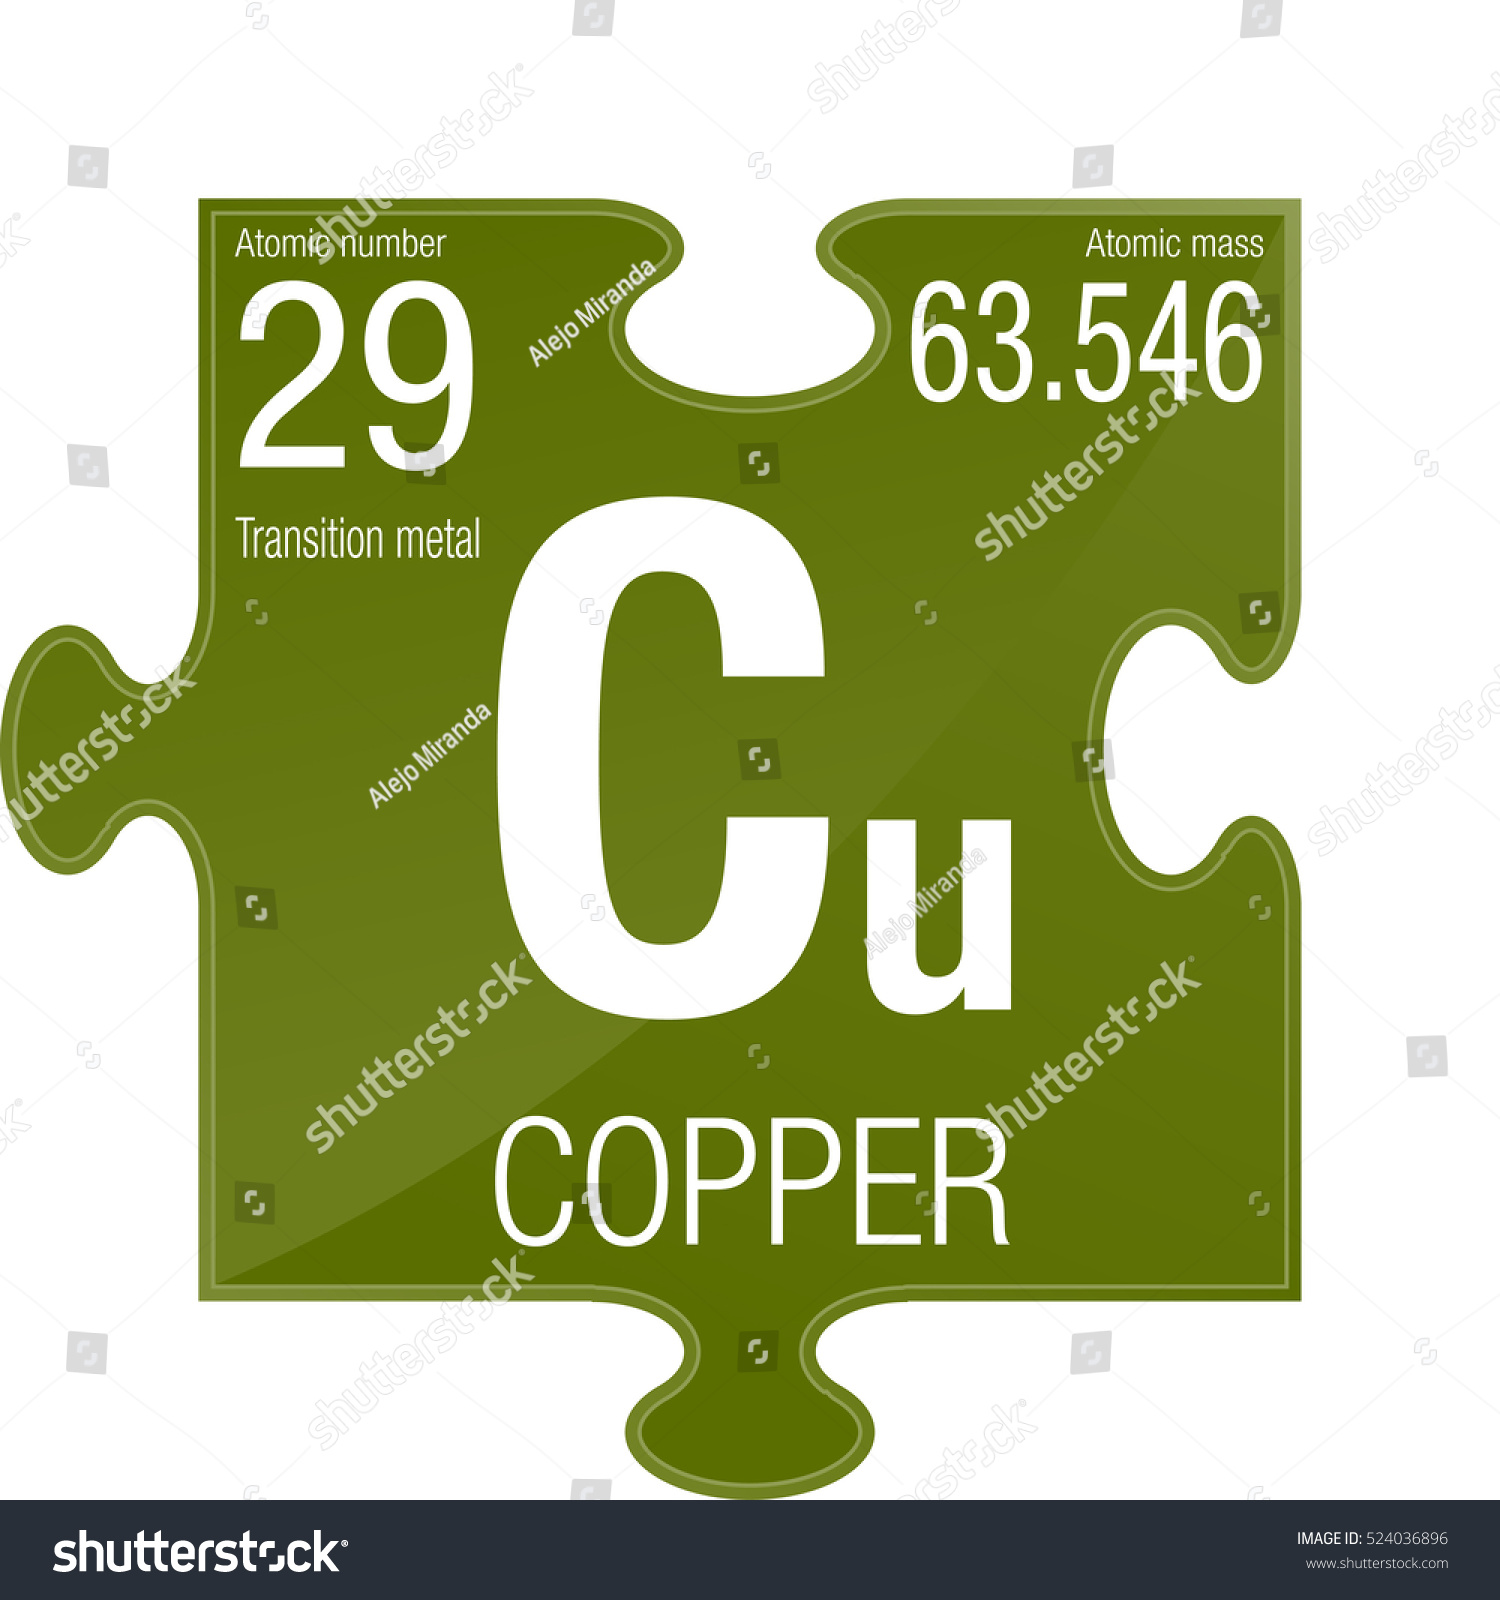 Copper symbol element number 29 periodic stock vector 524036896 copper symbol element number 29 of the periodic table of the elements chemistry buycottarizona